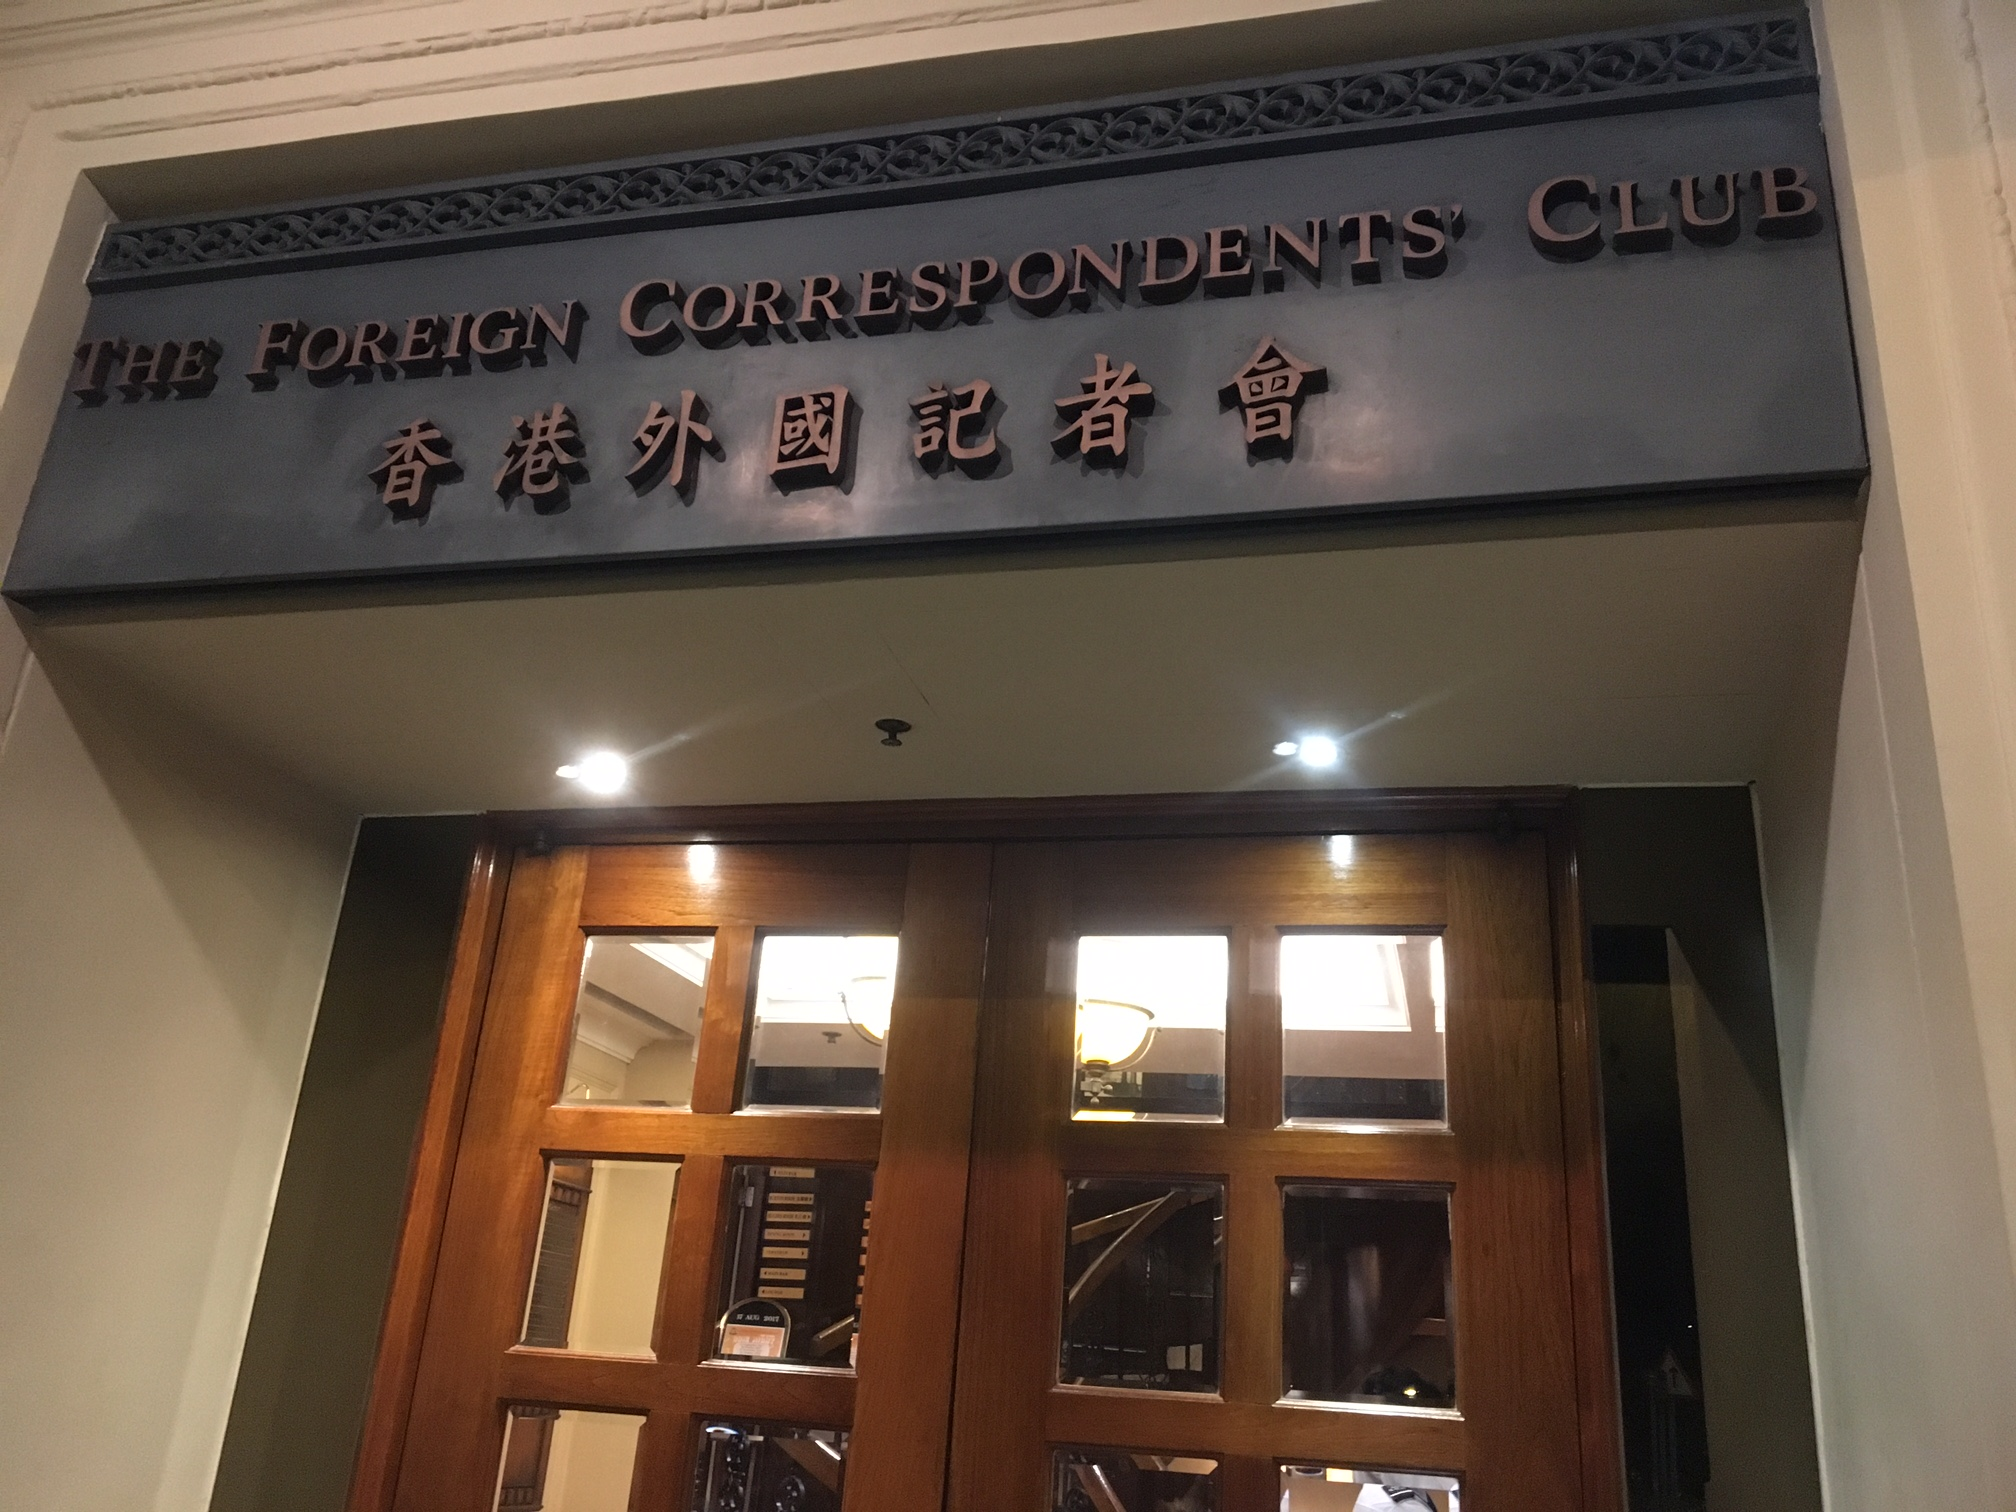 The Hong Kong Foreign Correspondents' Club